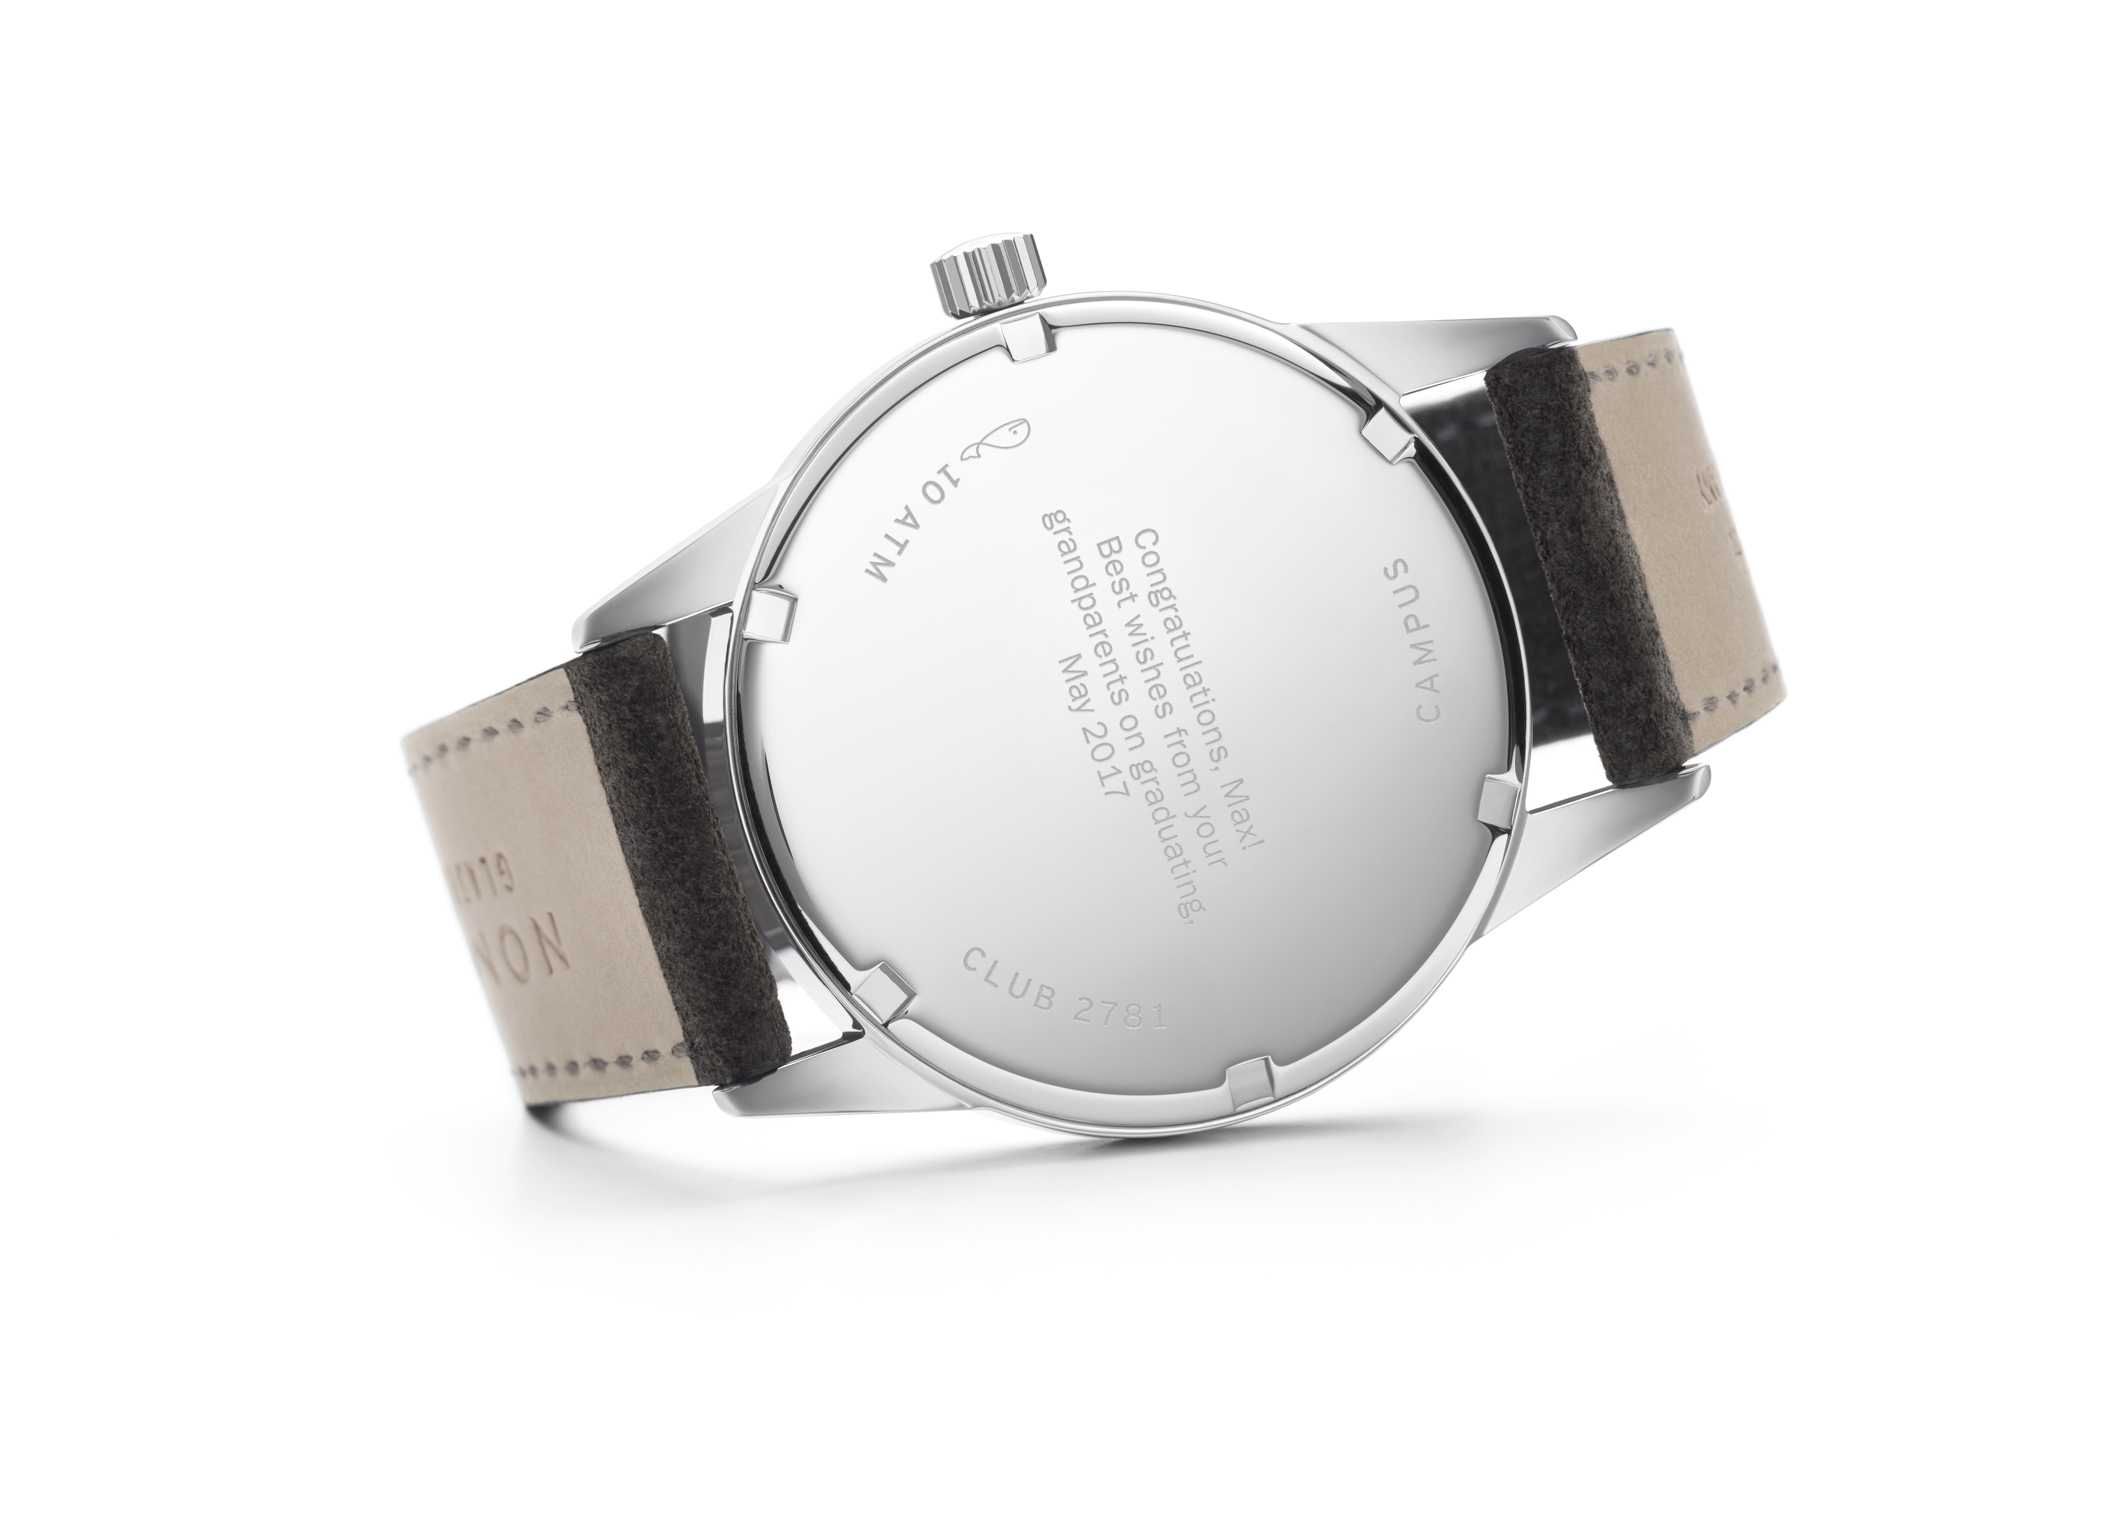 Nomos Club 38 Campus Nacht - the Campus series come with a complimentary engraving at no extra cost - a small personalized message on the back